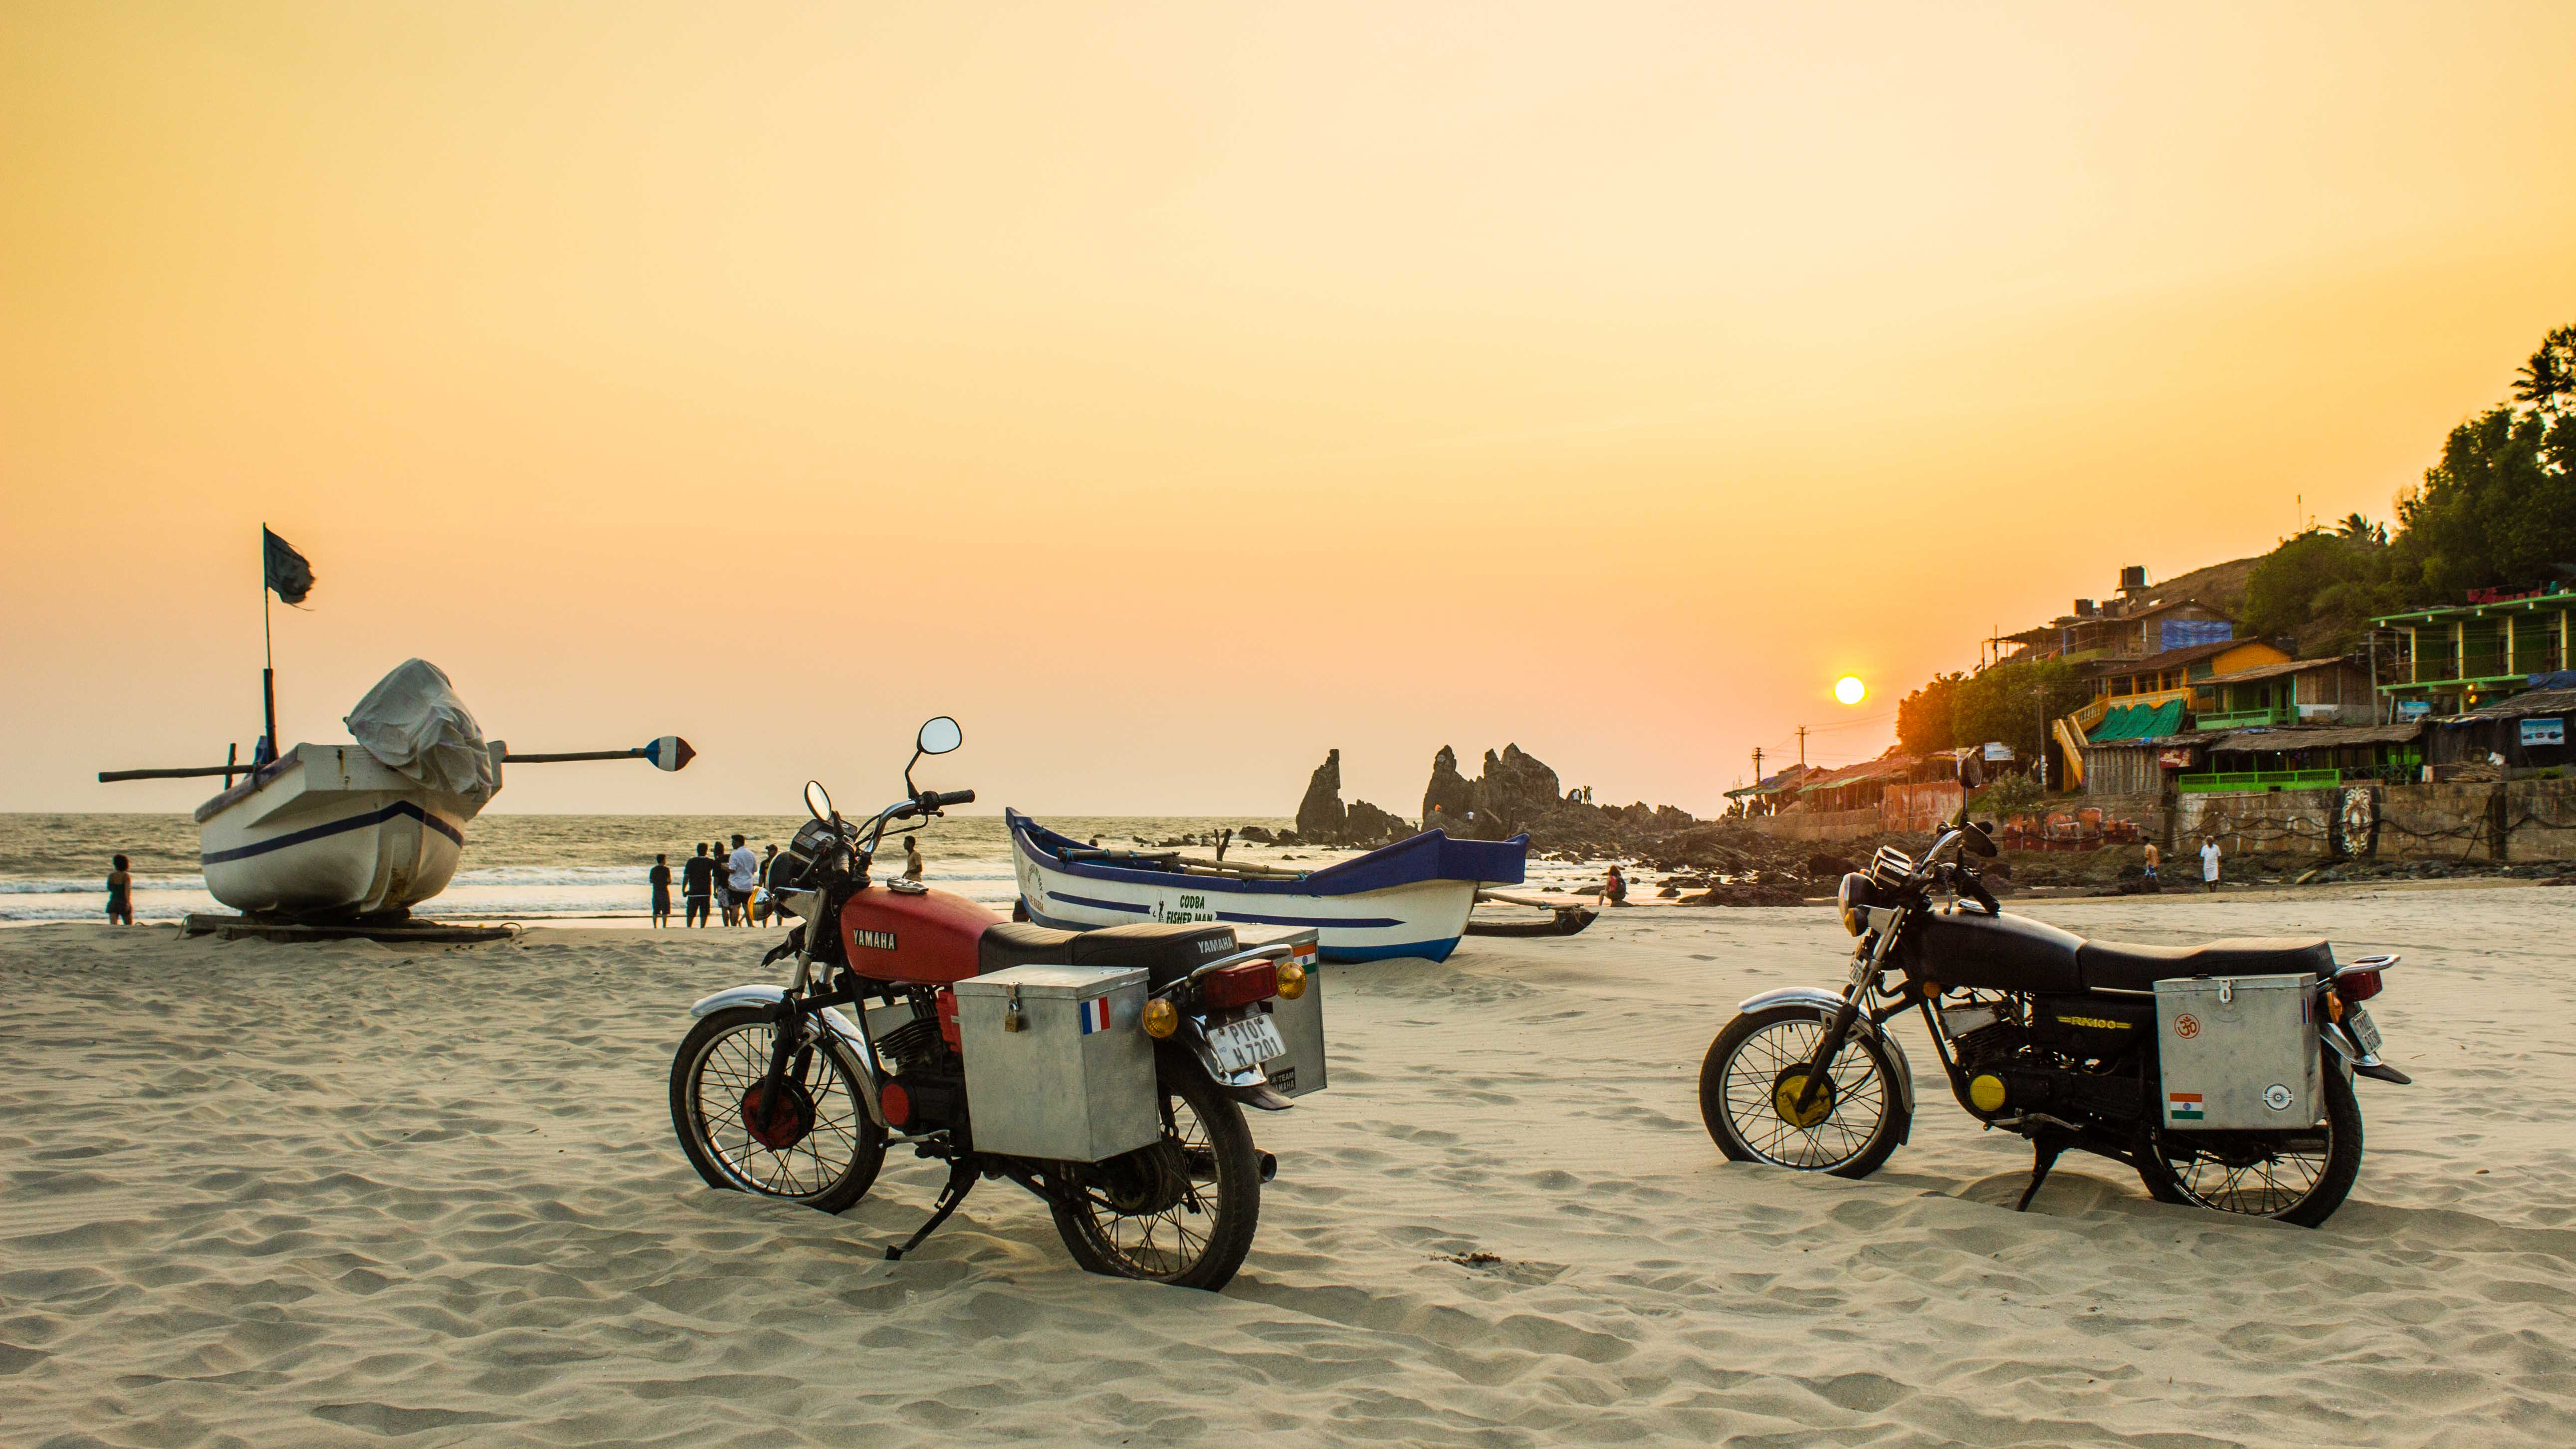 The wheels in the sand in Goa between Arabian Sea and coconut trees, view from the road by Lolo & John photographers